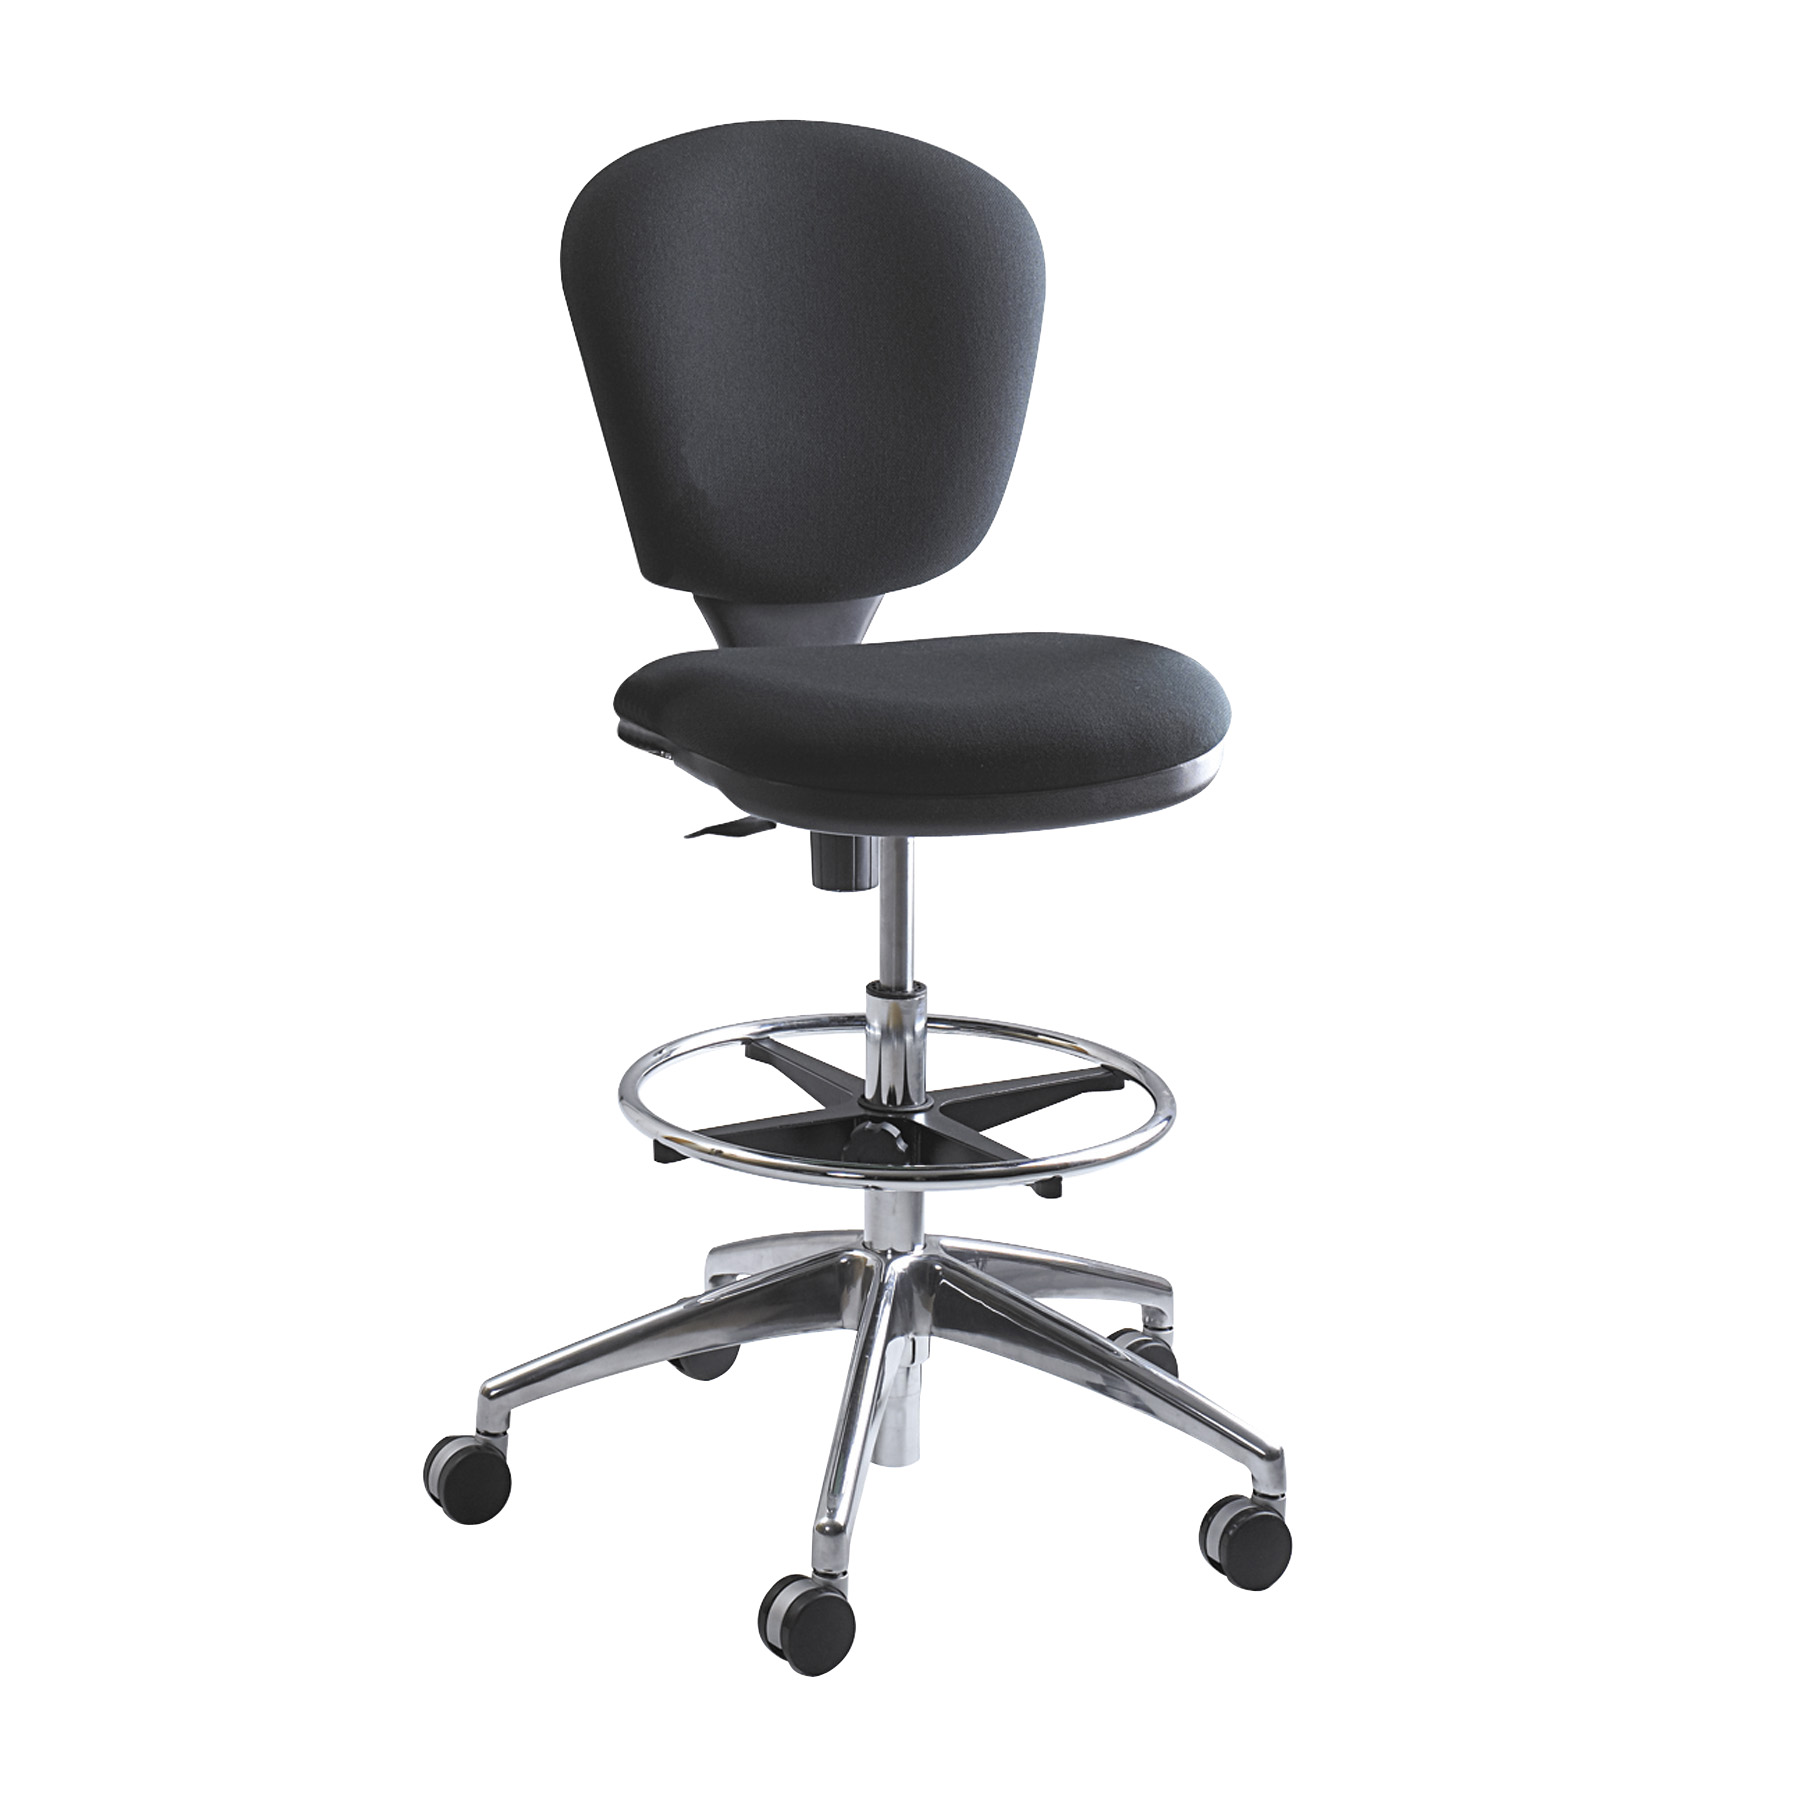 Merveilleux 3442BL Metro Contoured Back Swivel Extended Height Black Drafting Office  Chair With Two Tone